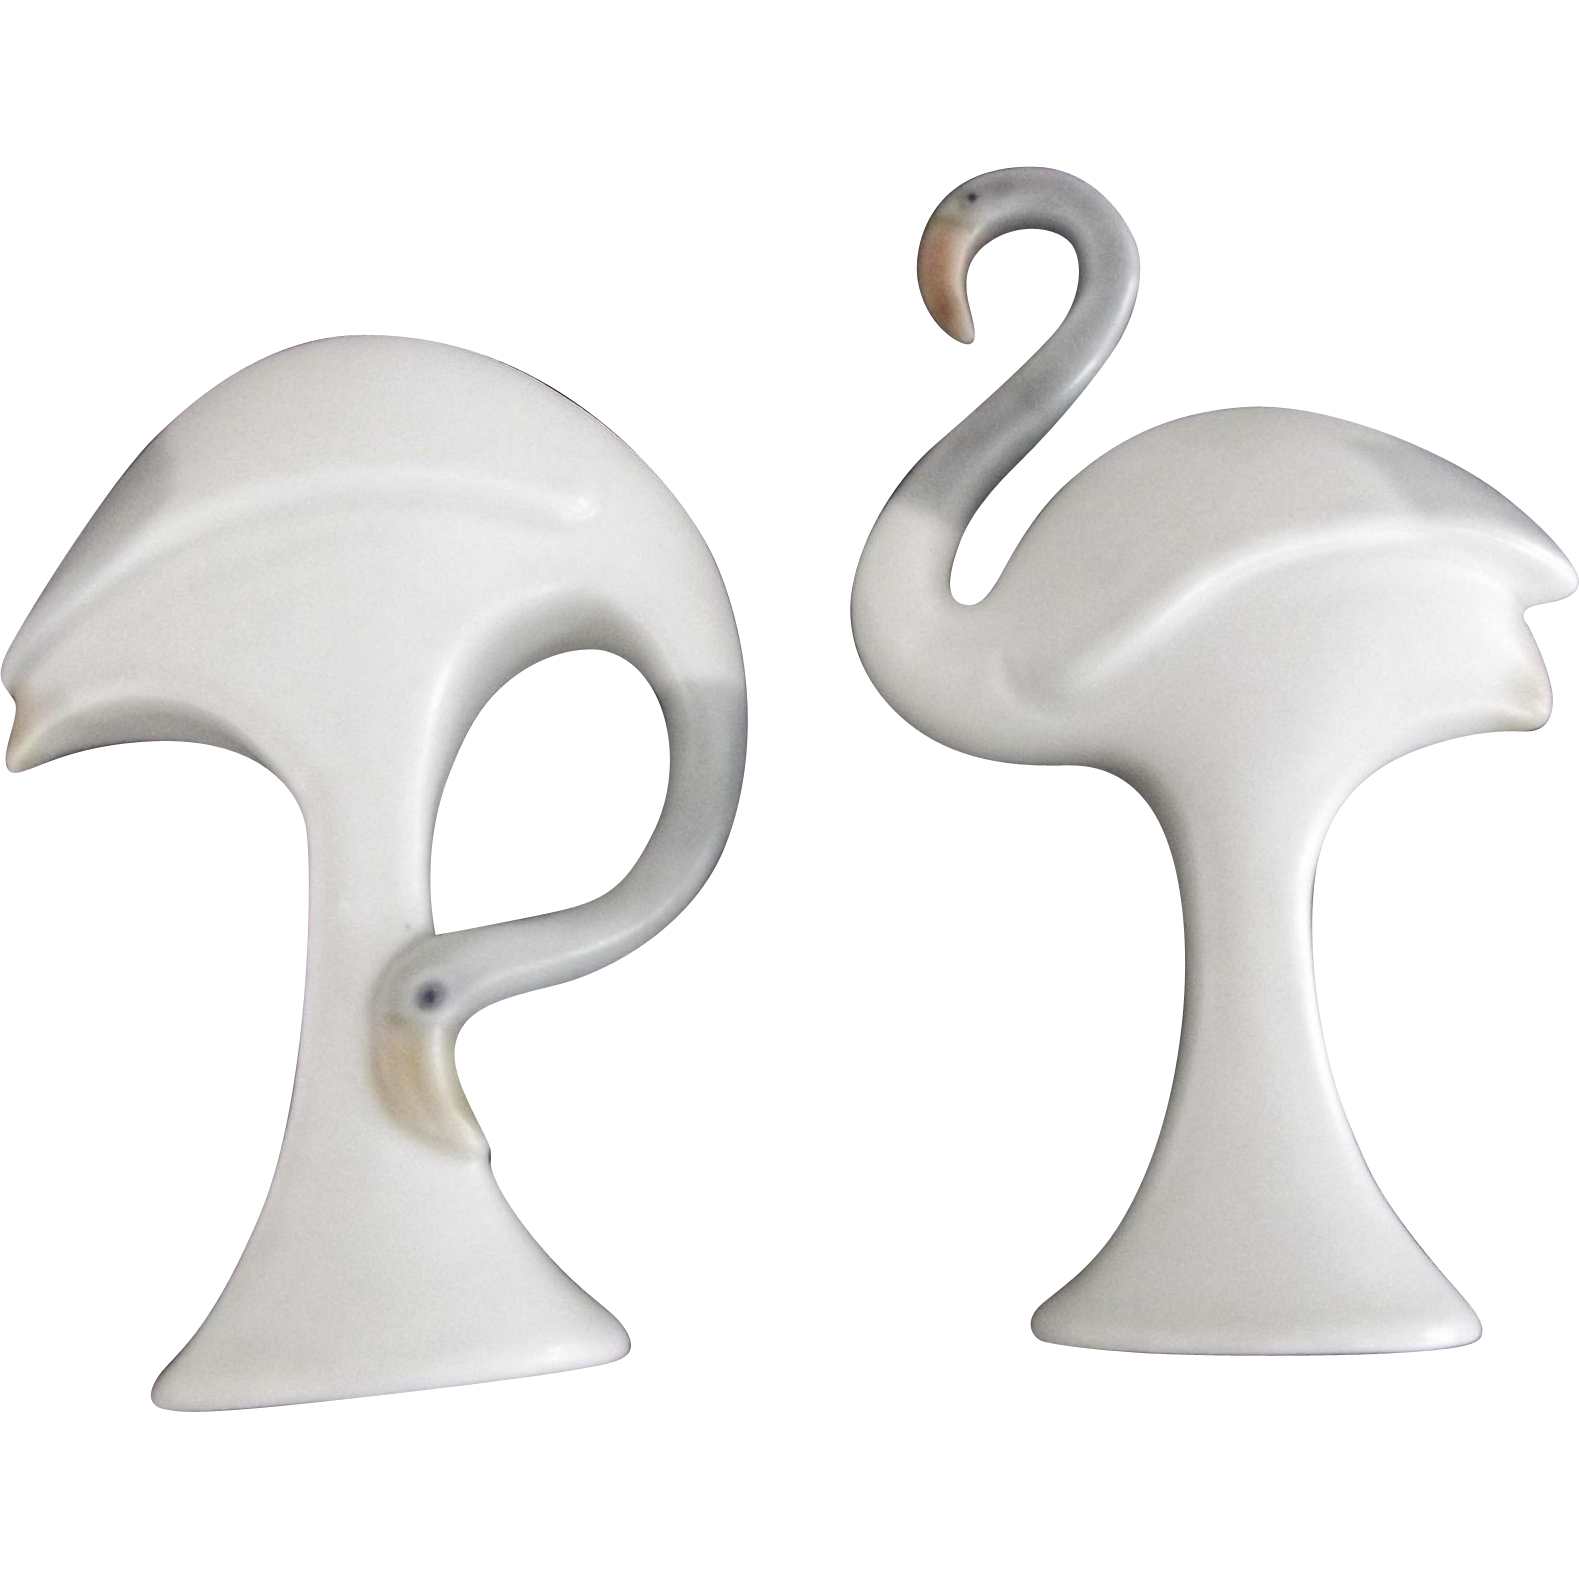 Pair of Porcelain Crane Figurines